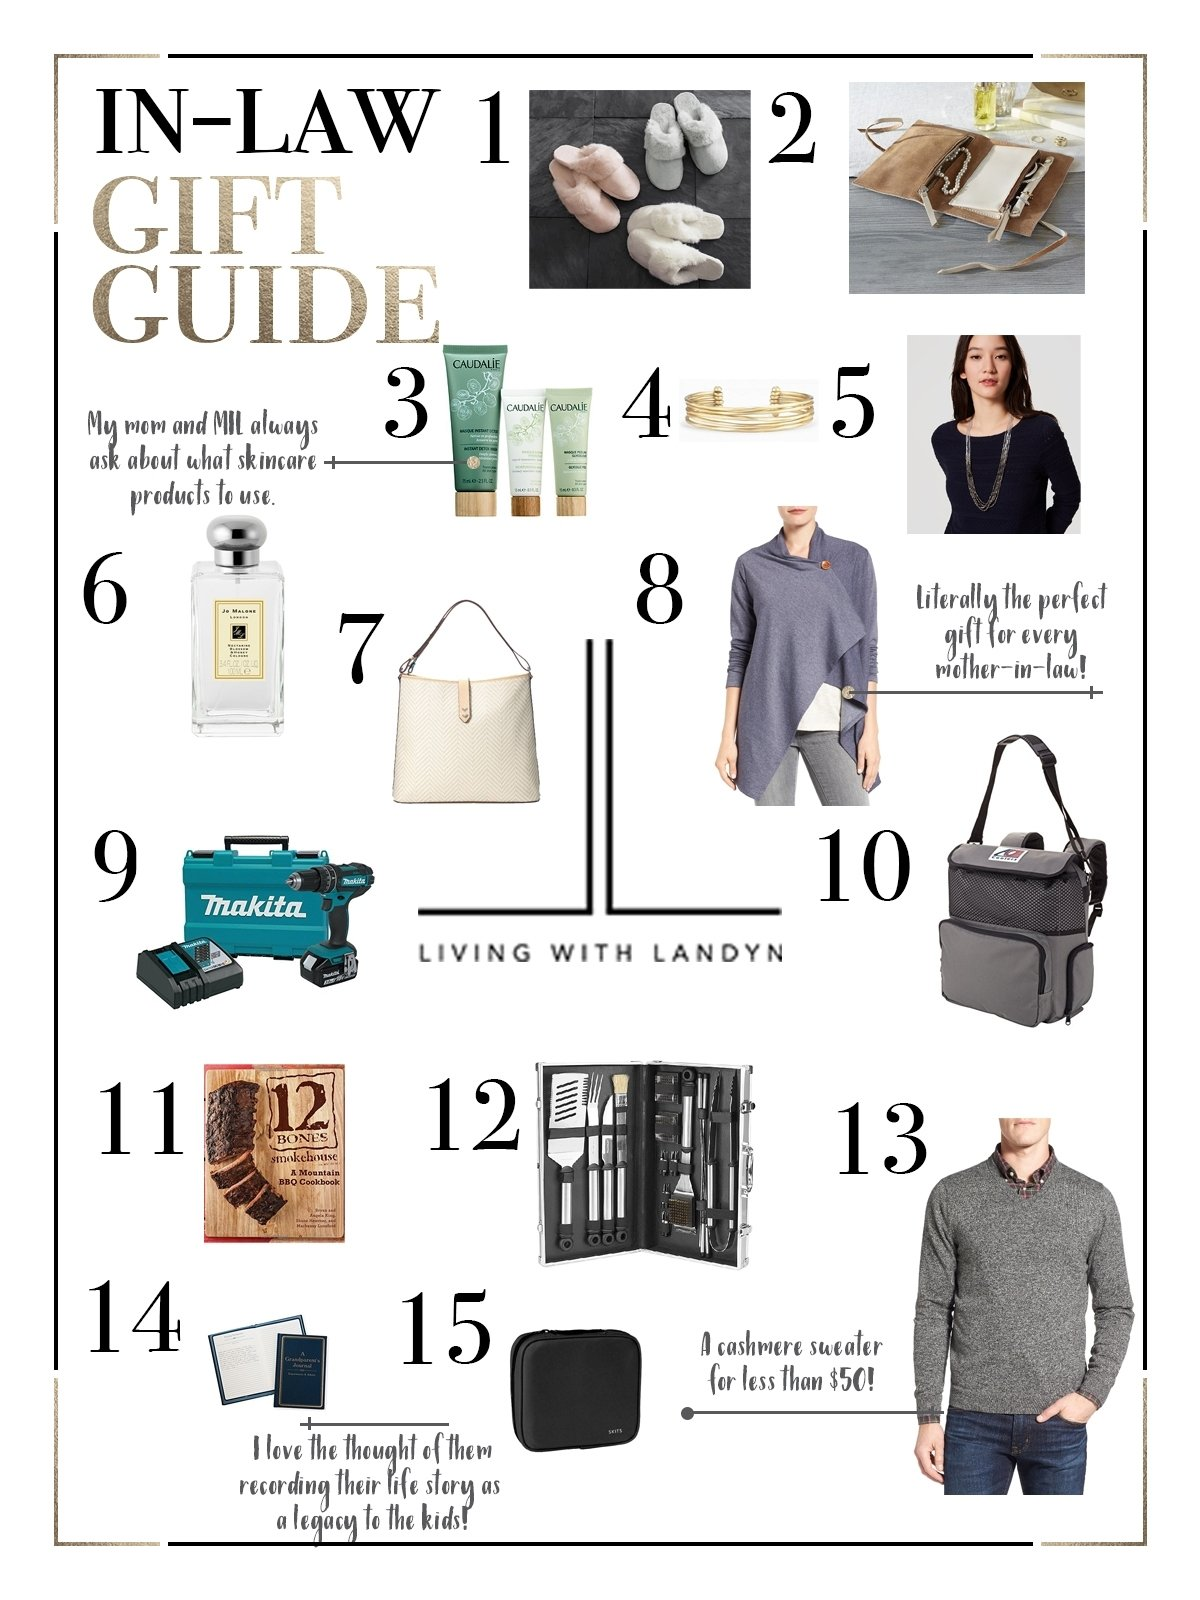 10 Most Recommended Gift Ideas For Father In Law if you are struggling with what to get your in laws for christmas 5 2020